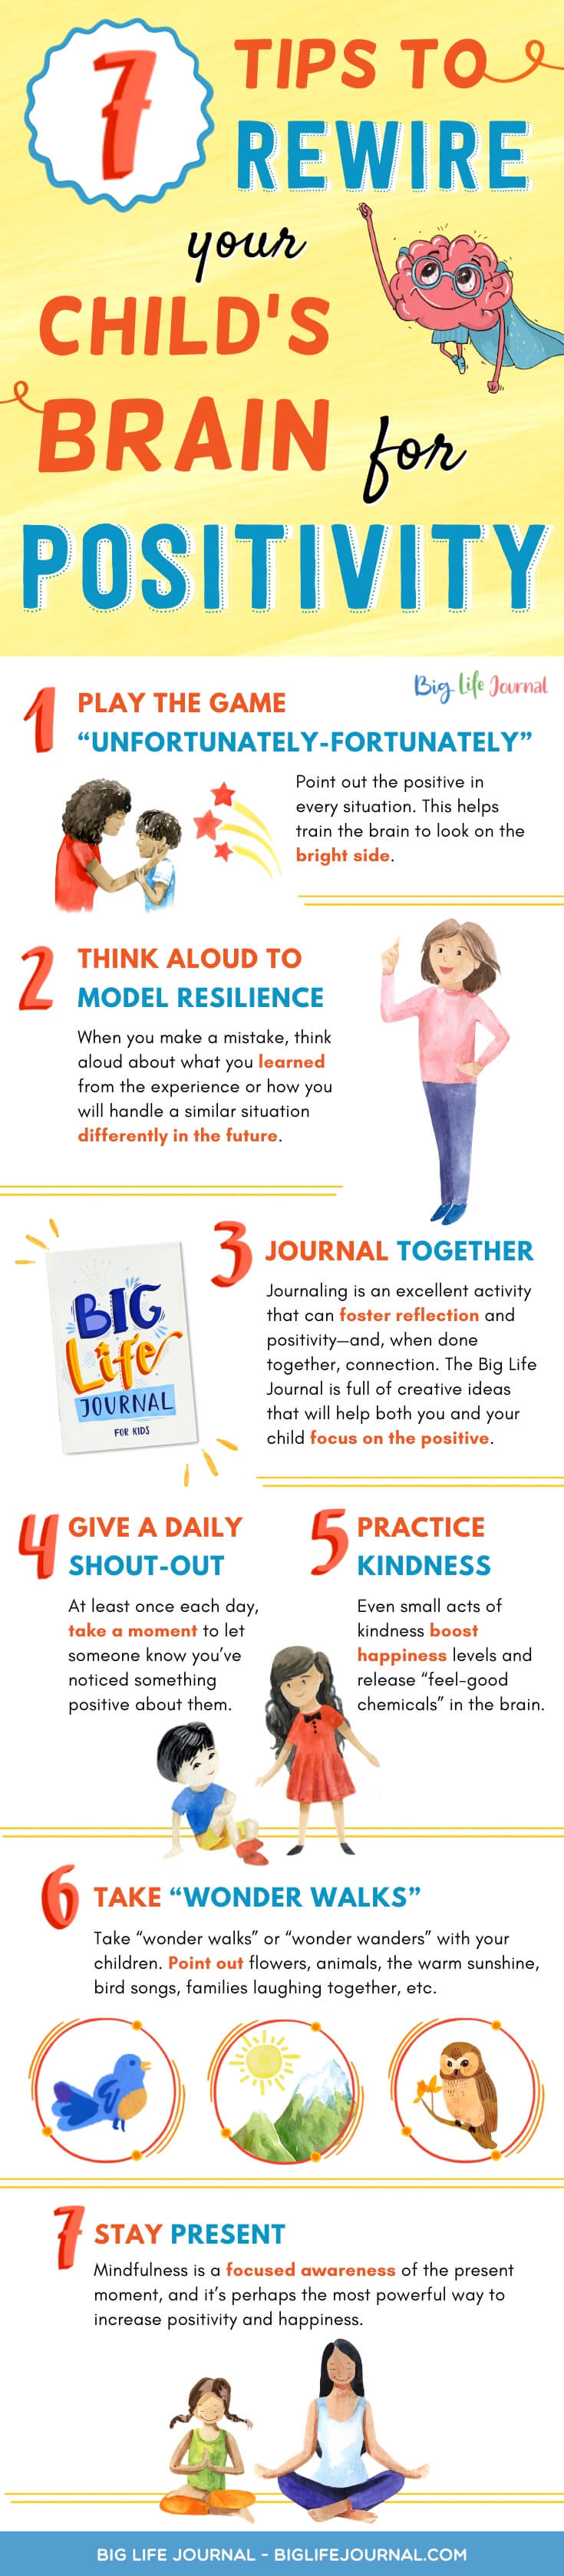 Tips to Rewire Your Child's Brain for Positivity